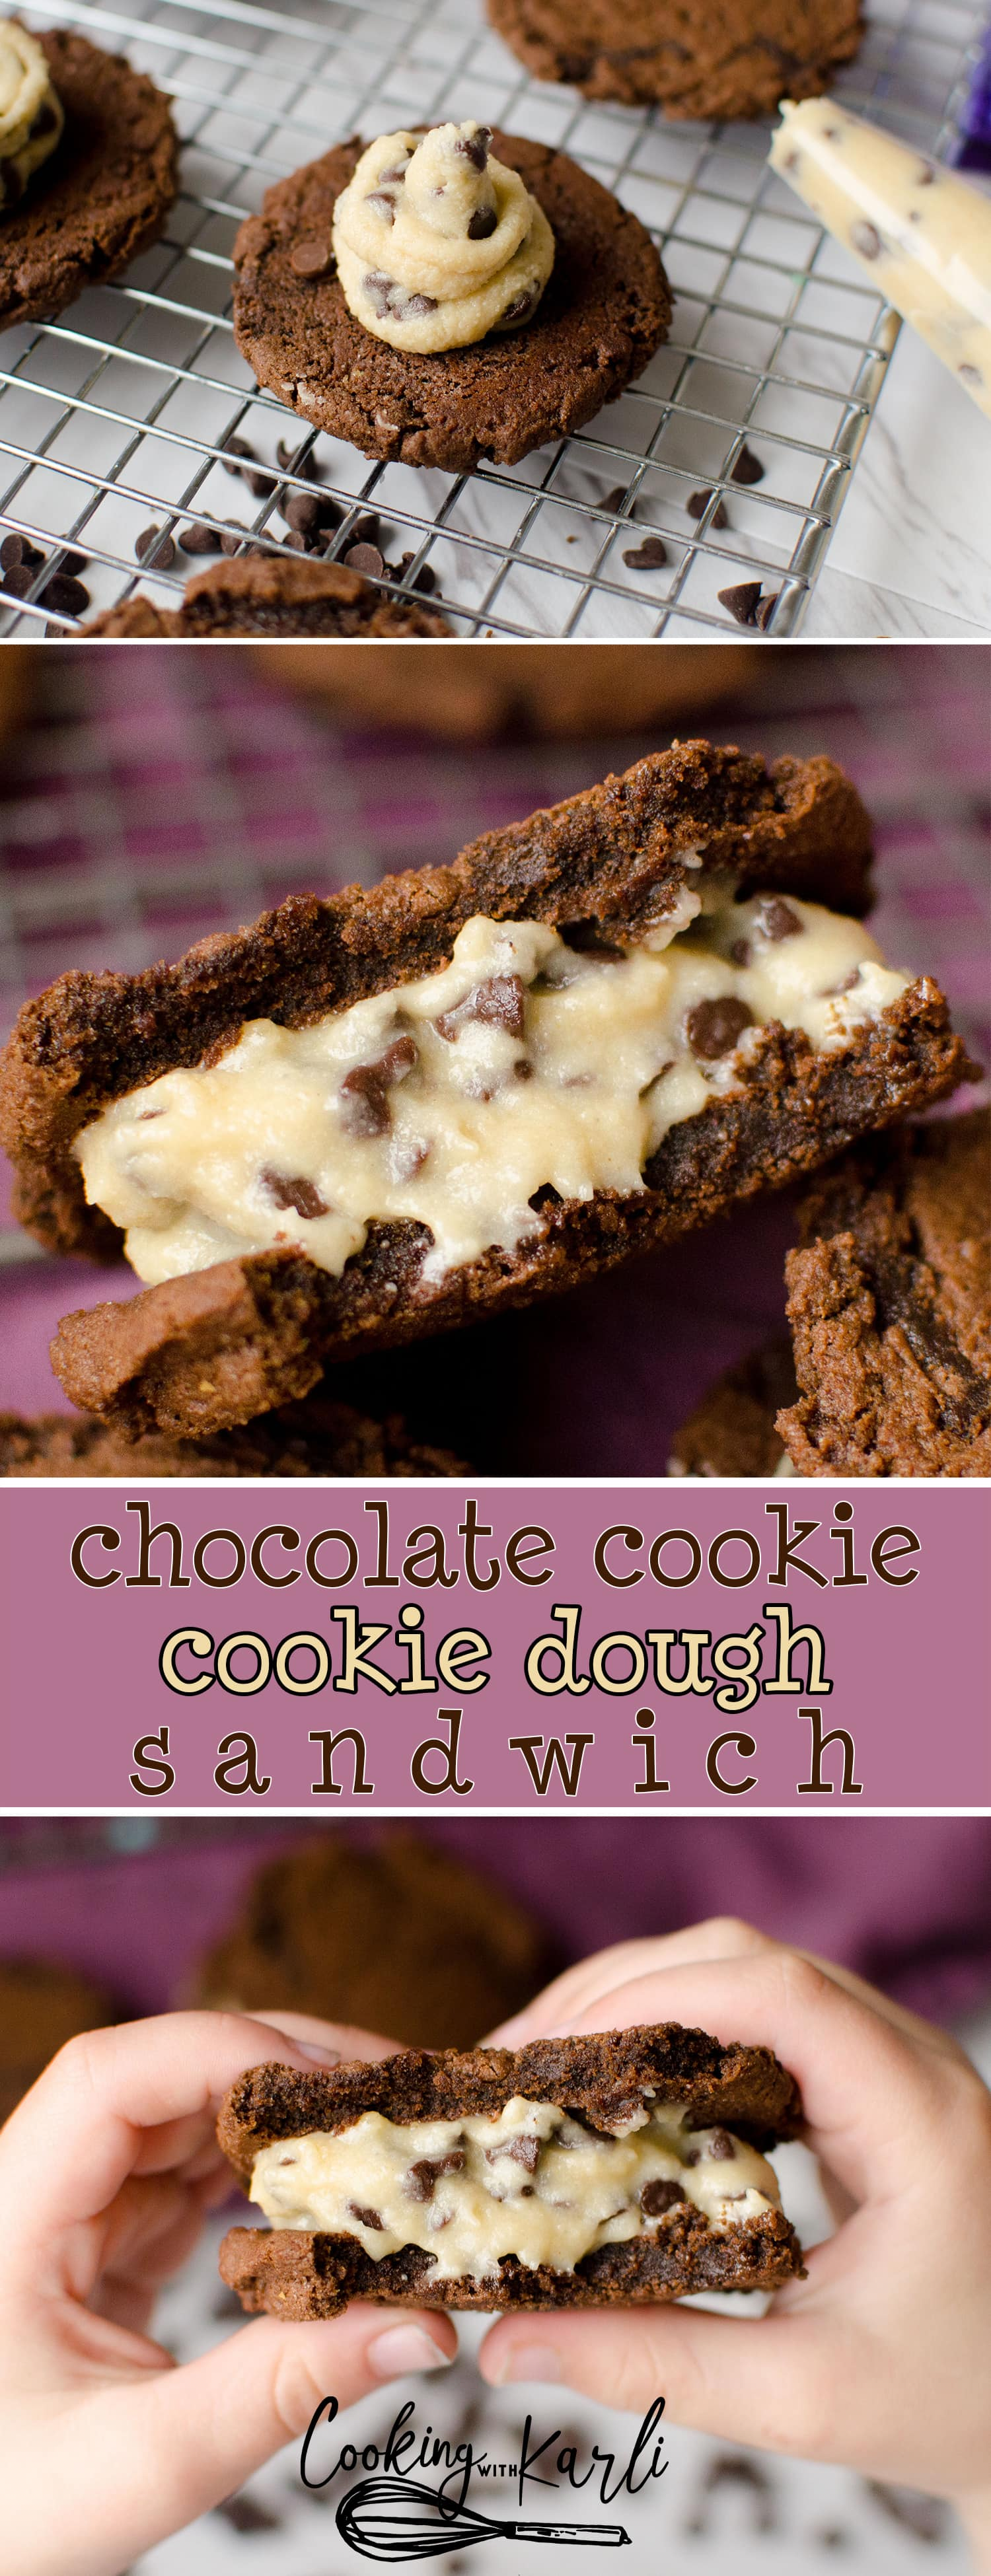 Chocolate Cookie Dough Sandwiches are a cookie dough whipped cream sandwiched in between two rich, chewy chocolate cookies.  This is a dessert lover's ultimate dream! -Cooking with Karli- #recipe #dessert #cookiedough #sandwichcookie